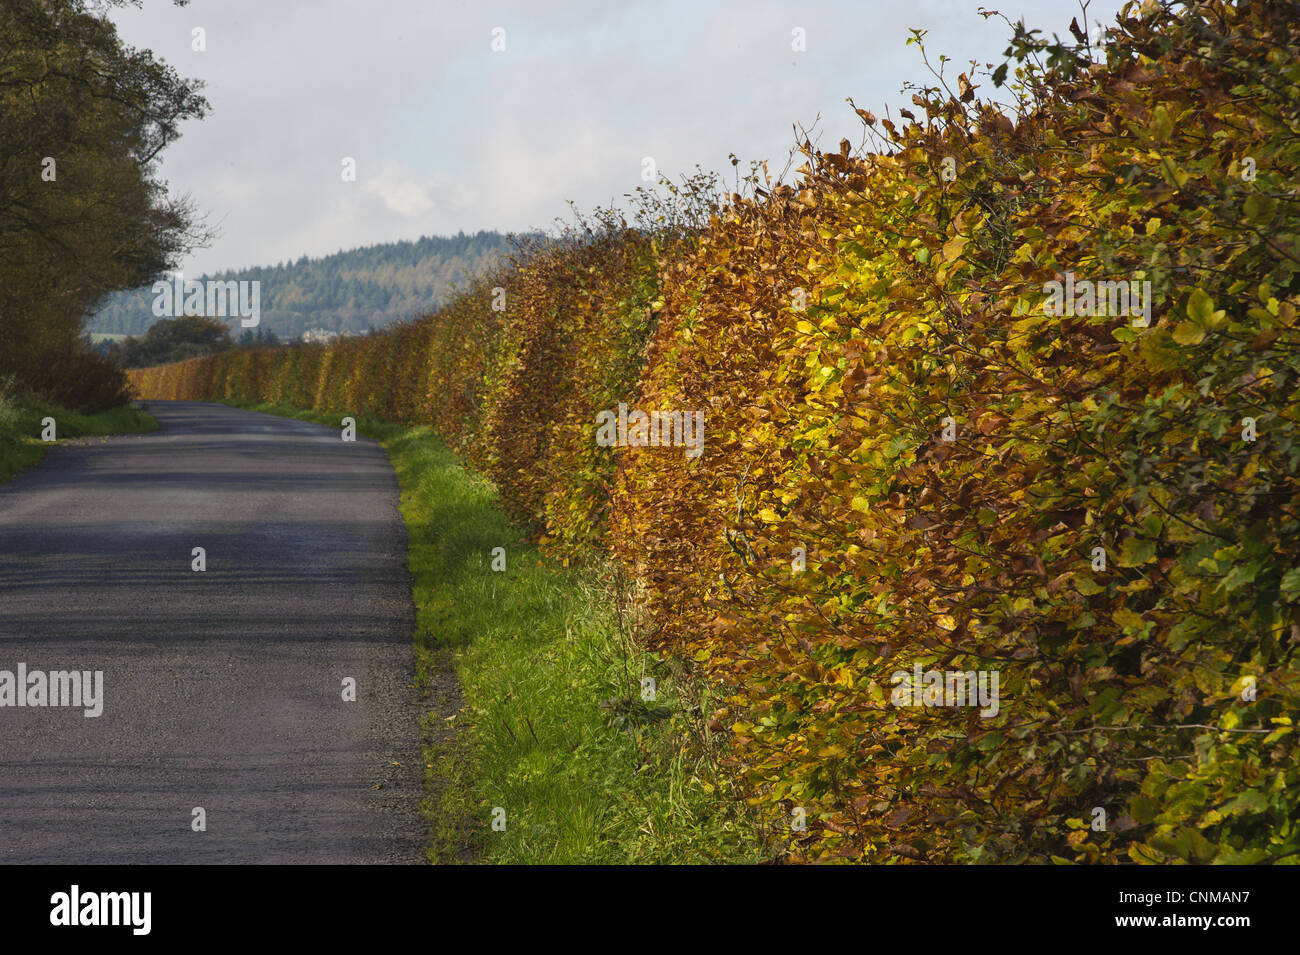 Common Beech Fagus sylvatica hedge leaves in autumn colour growing beside road Bleasdale Lancashire England november Stock Photo